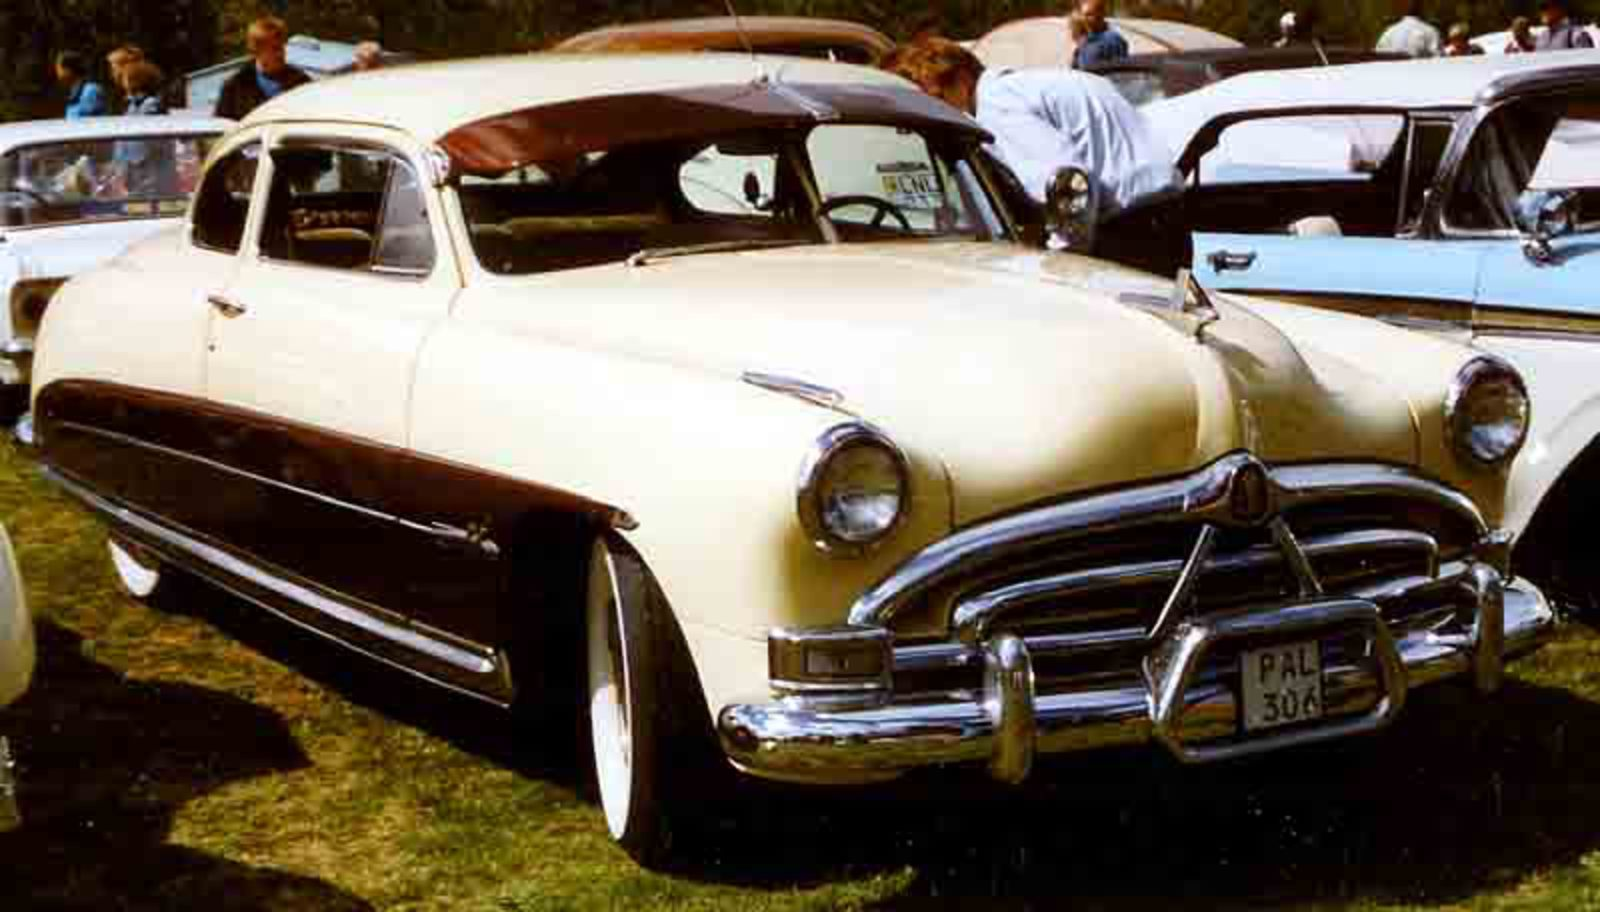 File:Hudson Hornet Club Coupe 1951.jpg - Wikimedia Commons